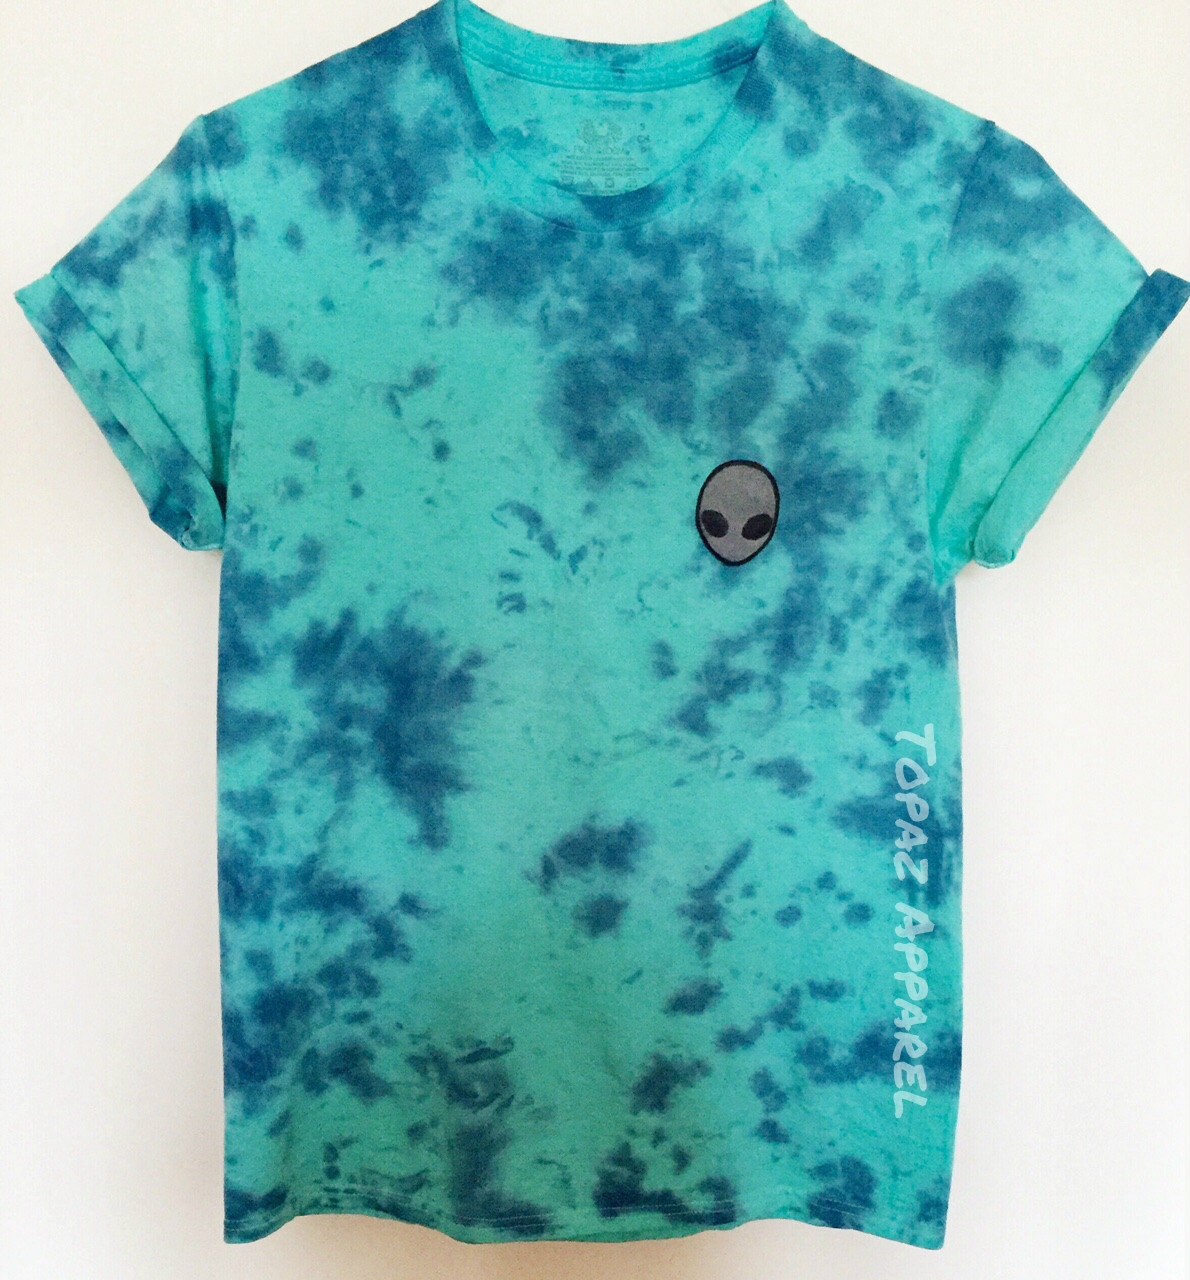 Cosimia tie dye shirt for Black and blue tie dye t shirts